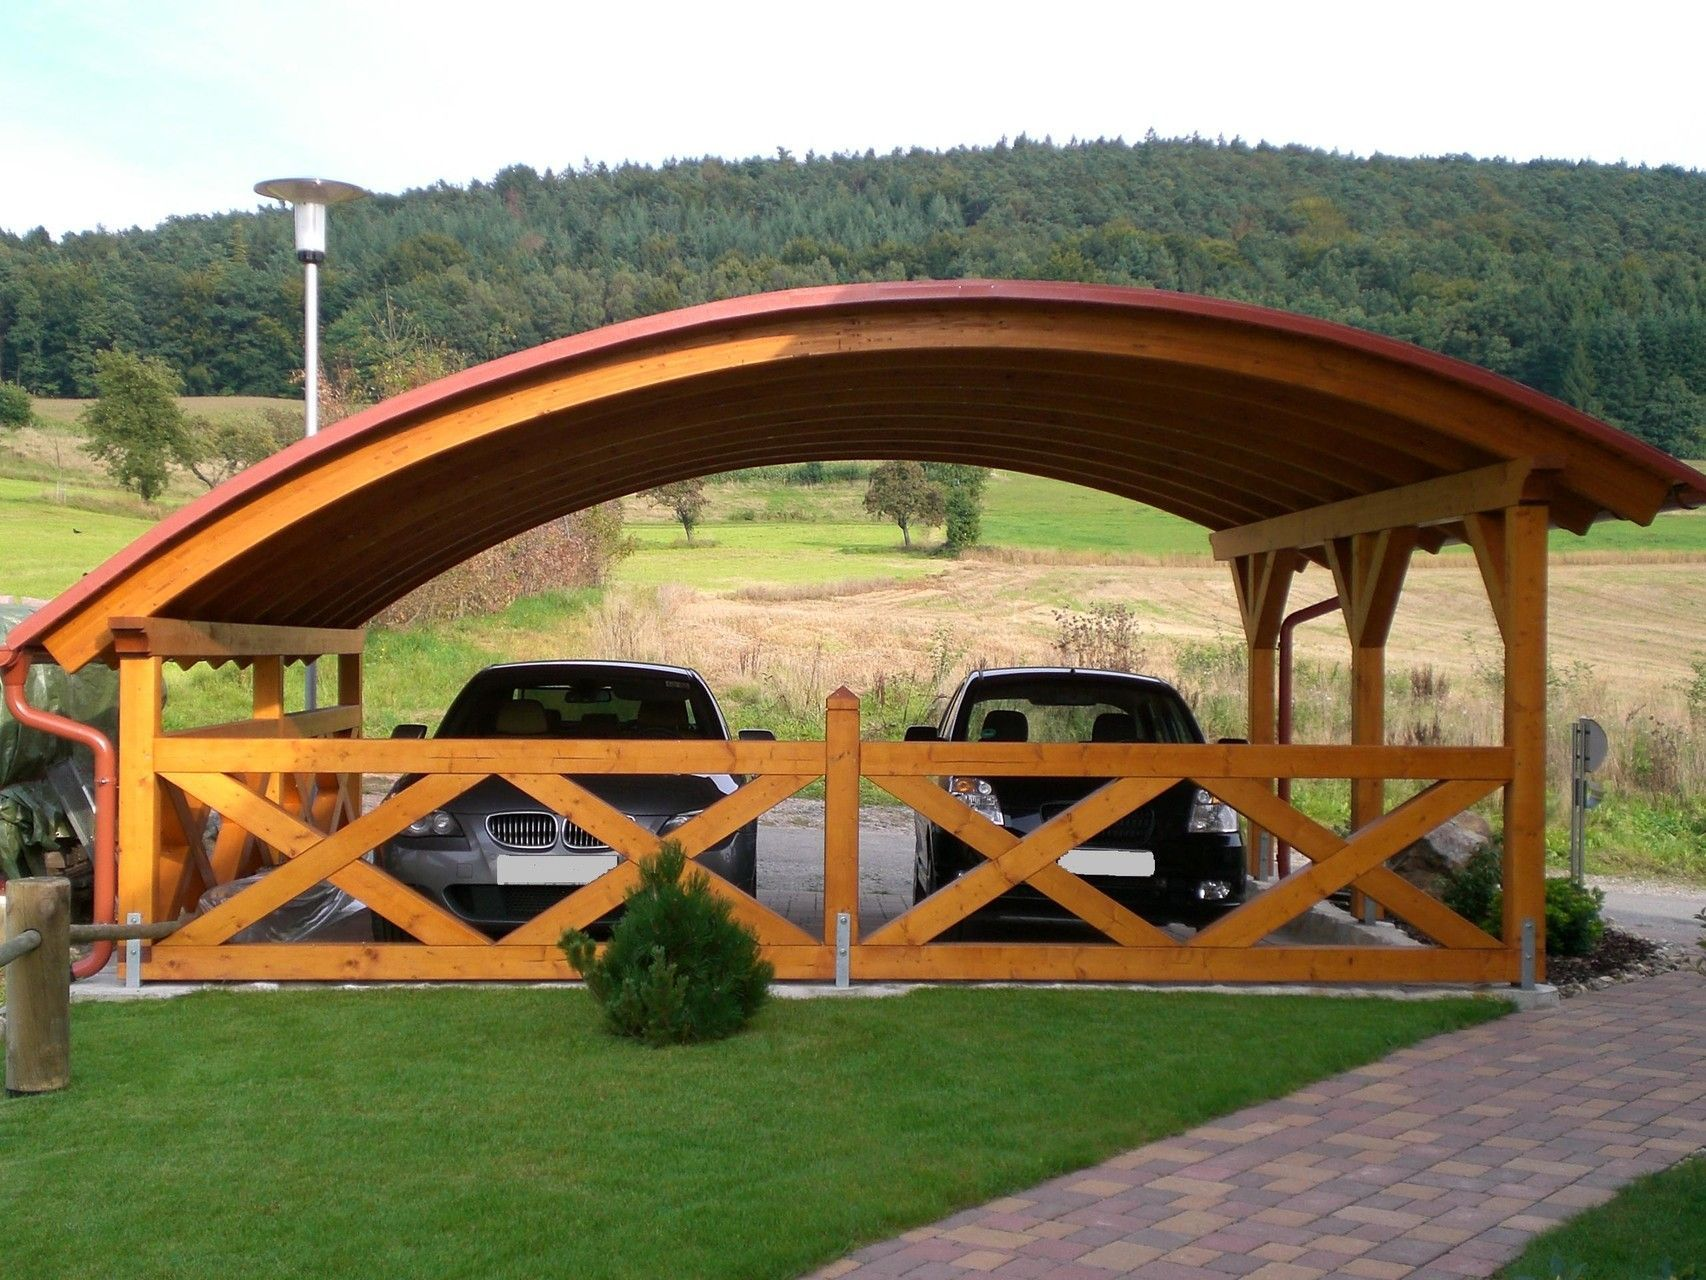 Carport Design Carport Bilder Galerie Schauen Sie Sich Hier In Unserer Design Carport Carport Designs House With Porch Carport